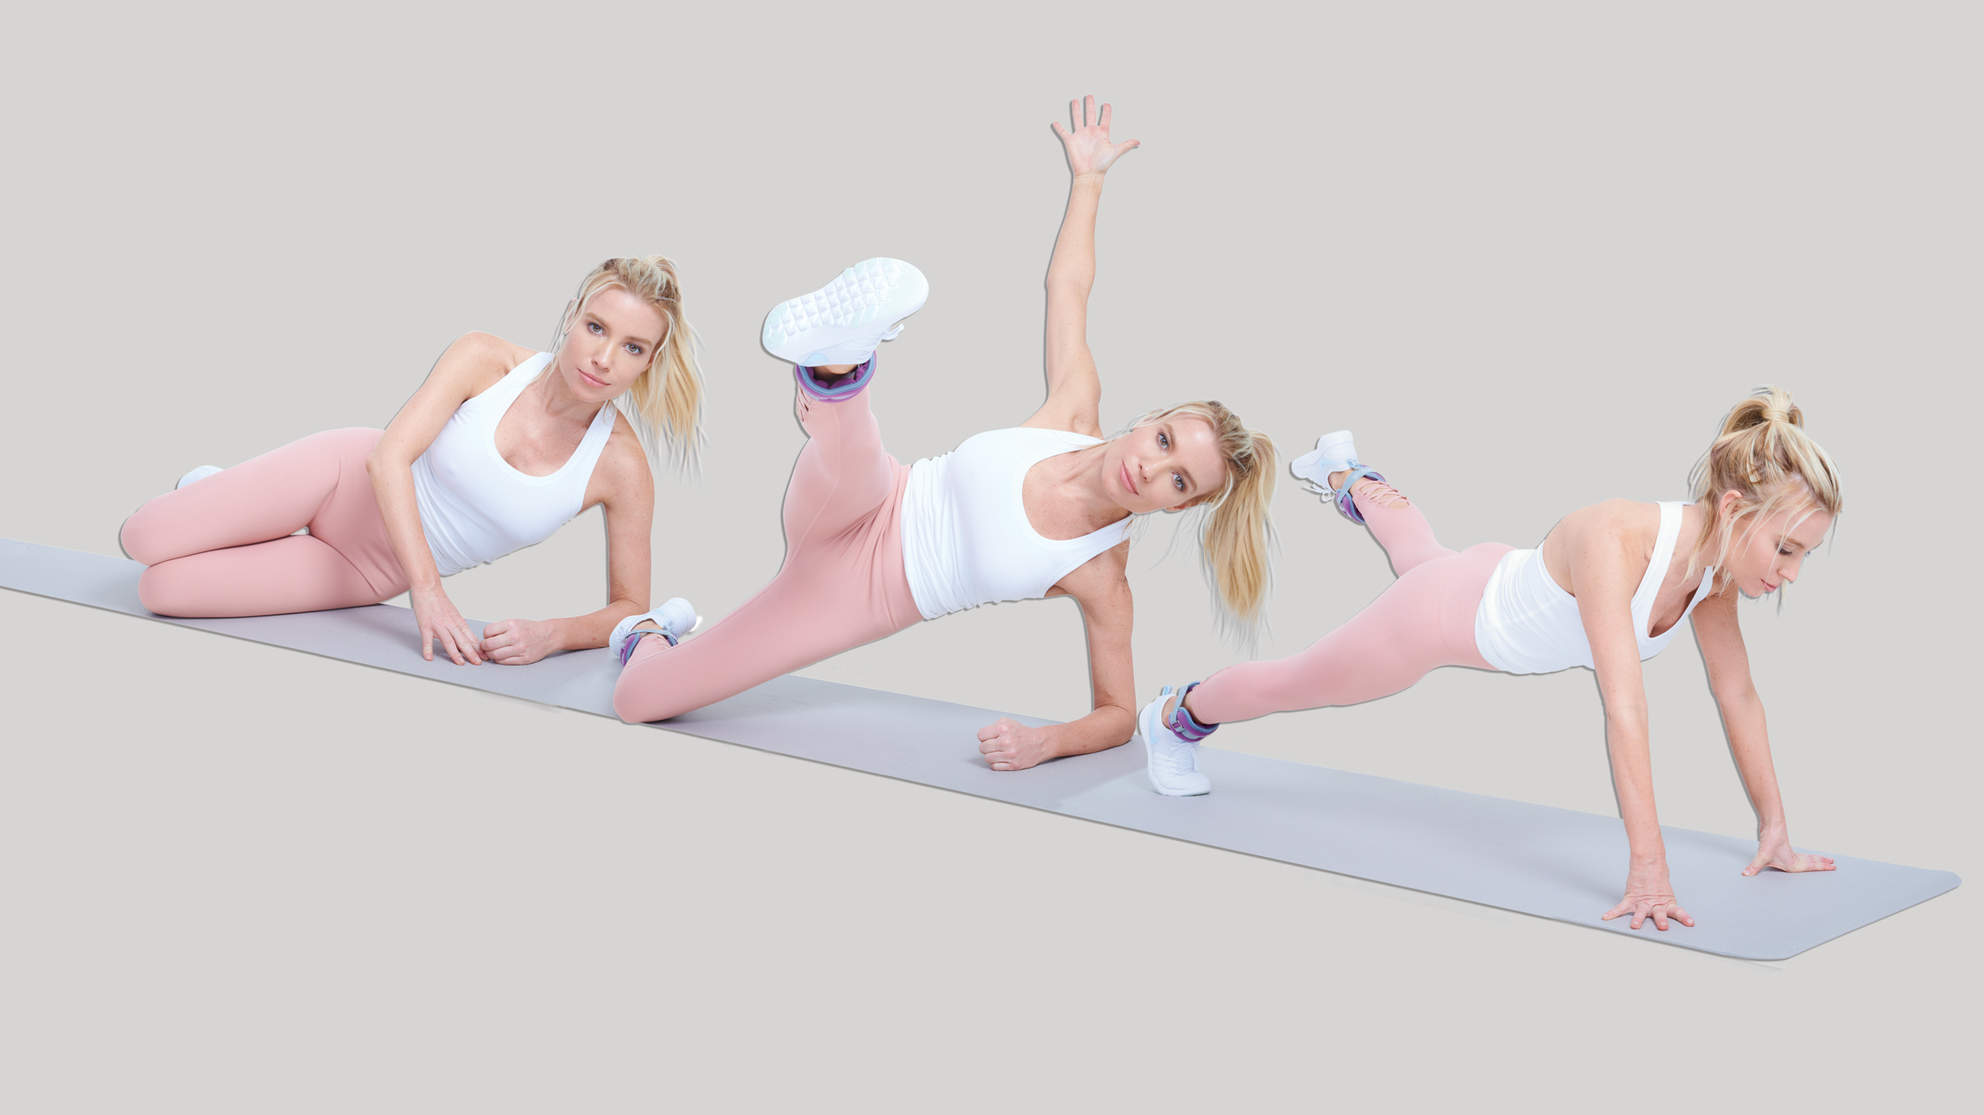 tracy-anderson-may-side-lift-plank